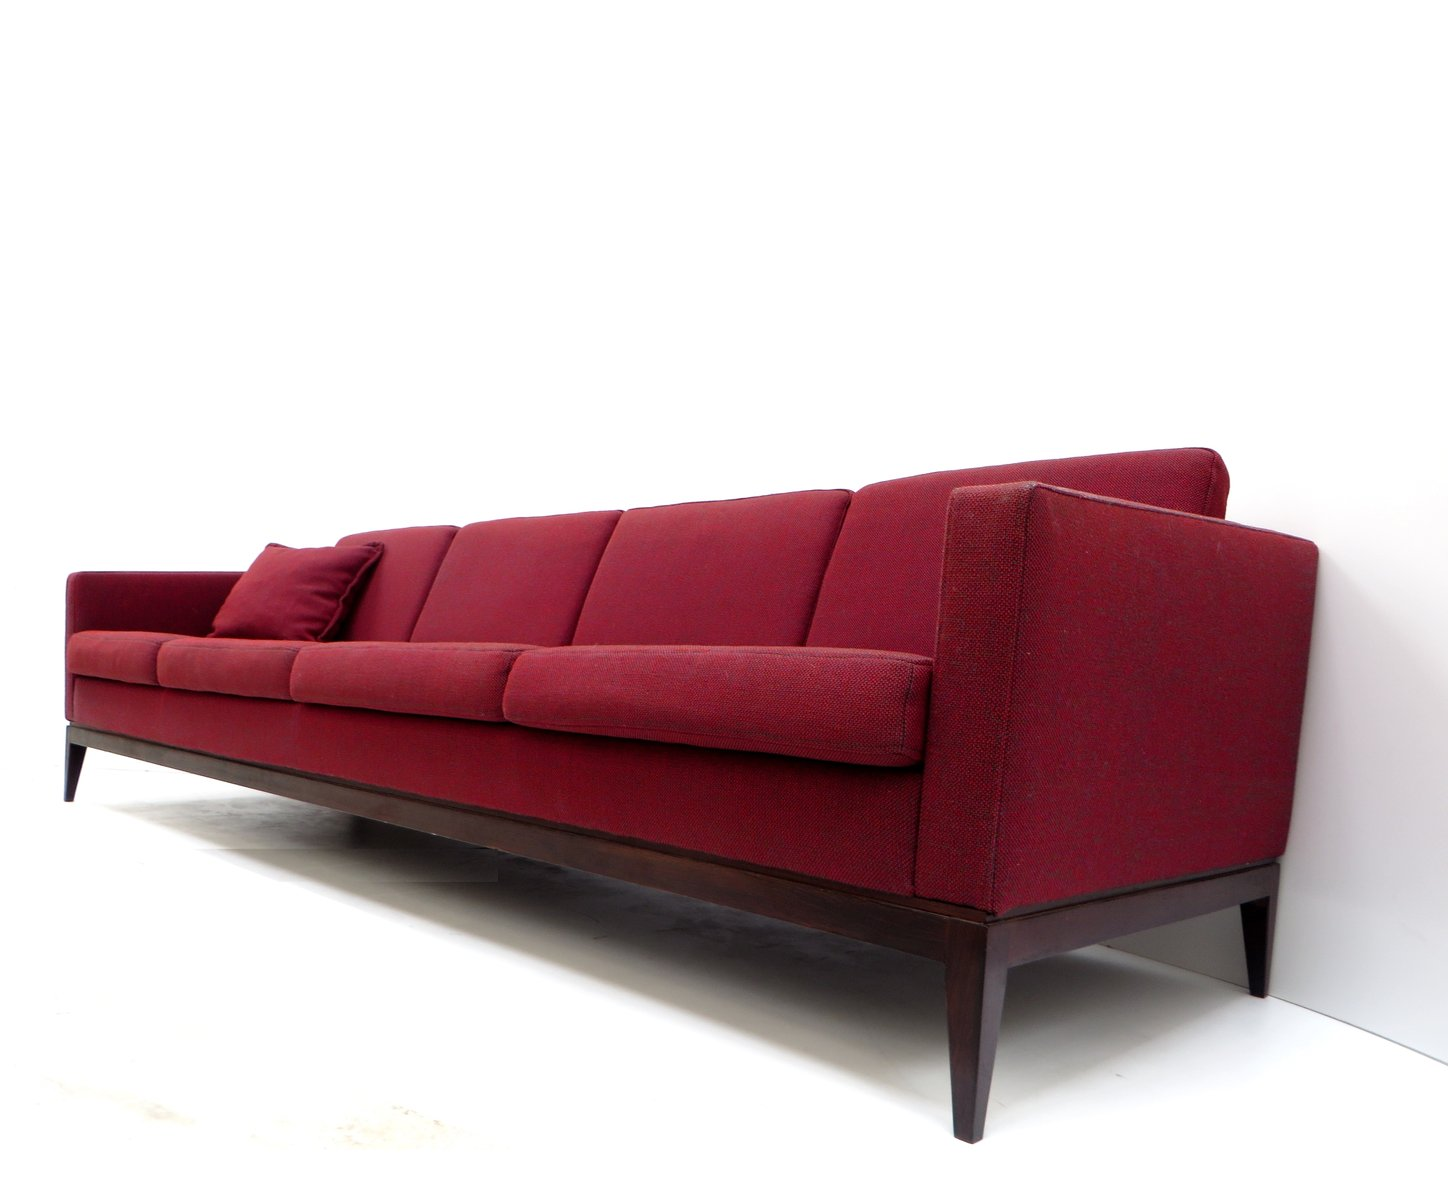 Large vintage burgundy four seater sofa for sale at pamono for Sofa 7 seater